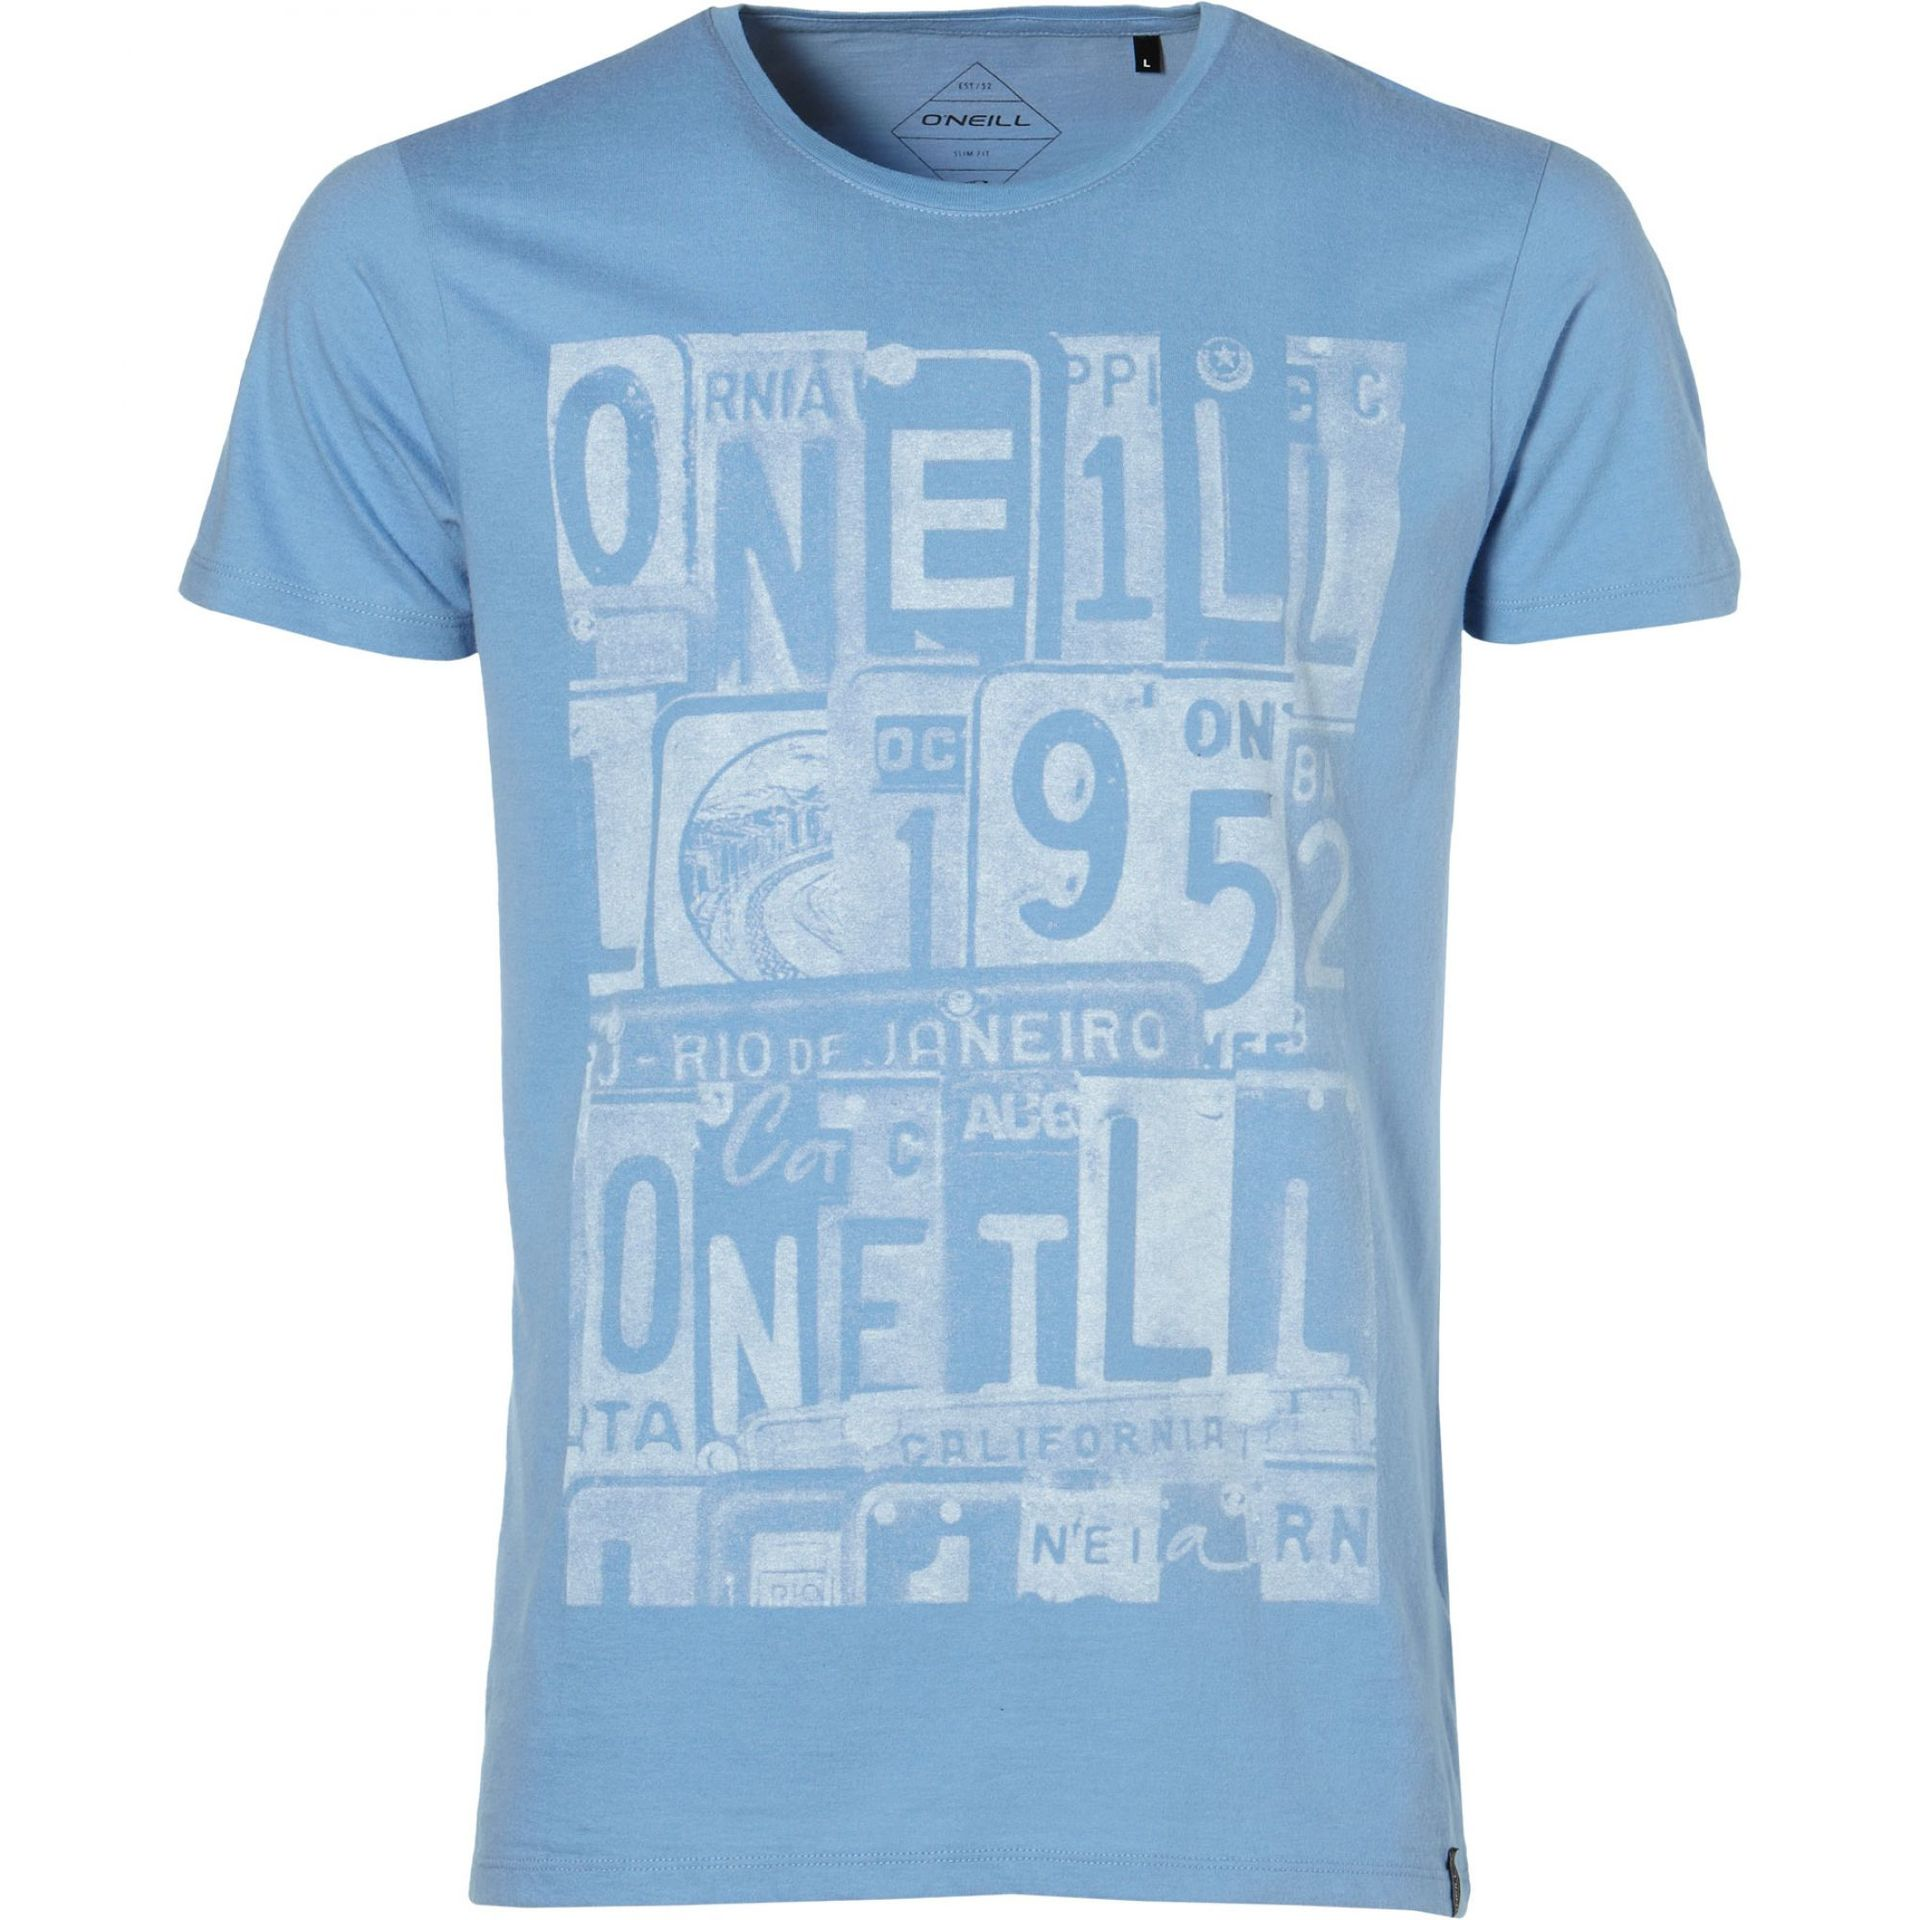 T-Shirt Oneill LM Licence To Chill